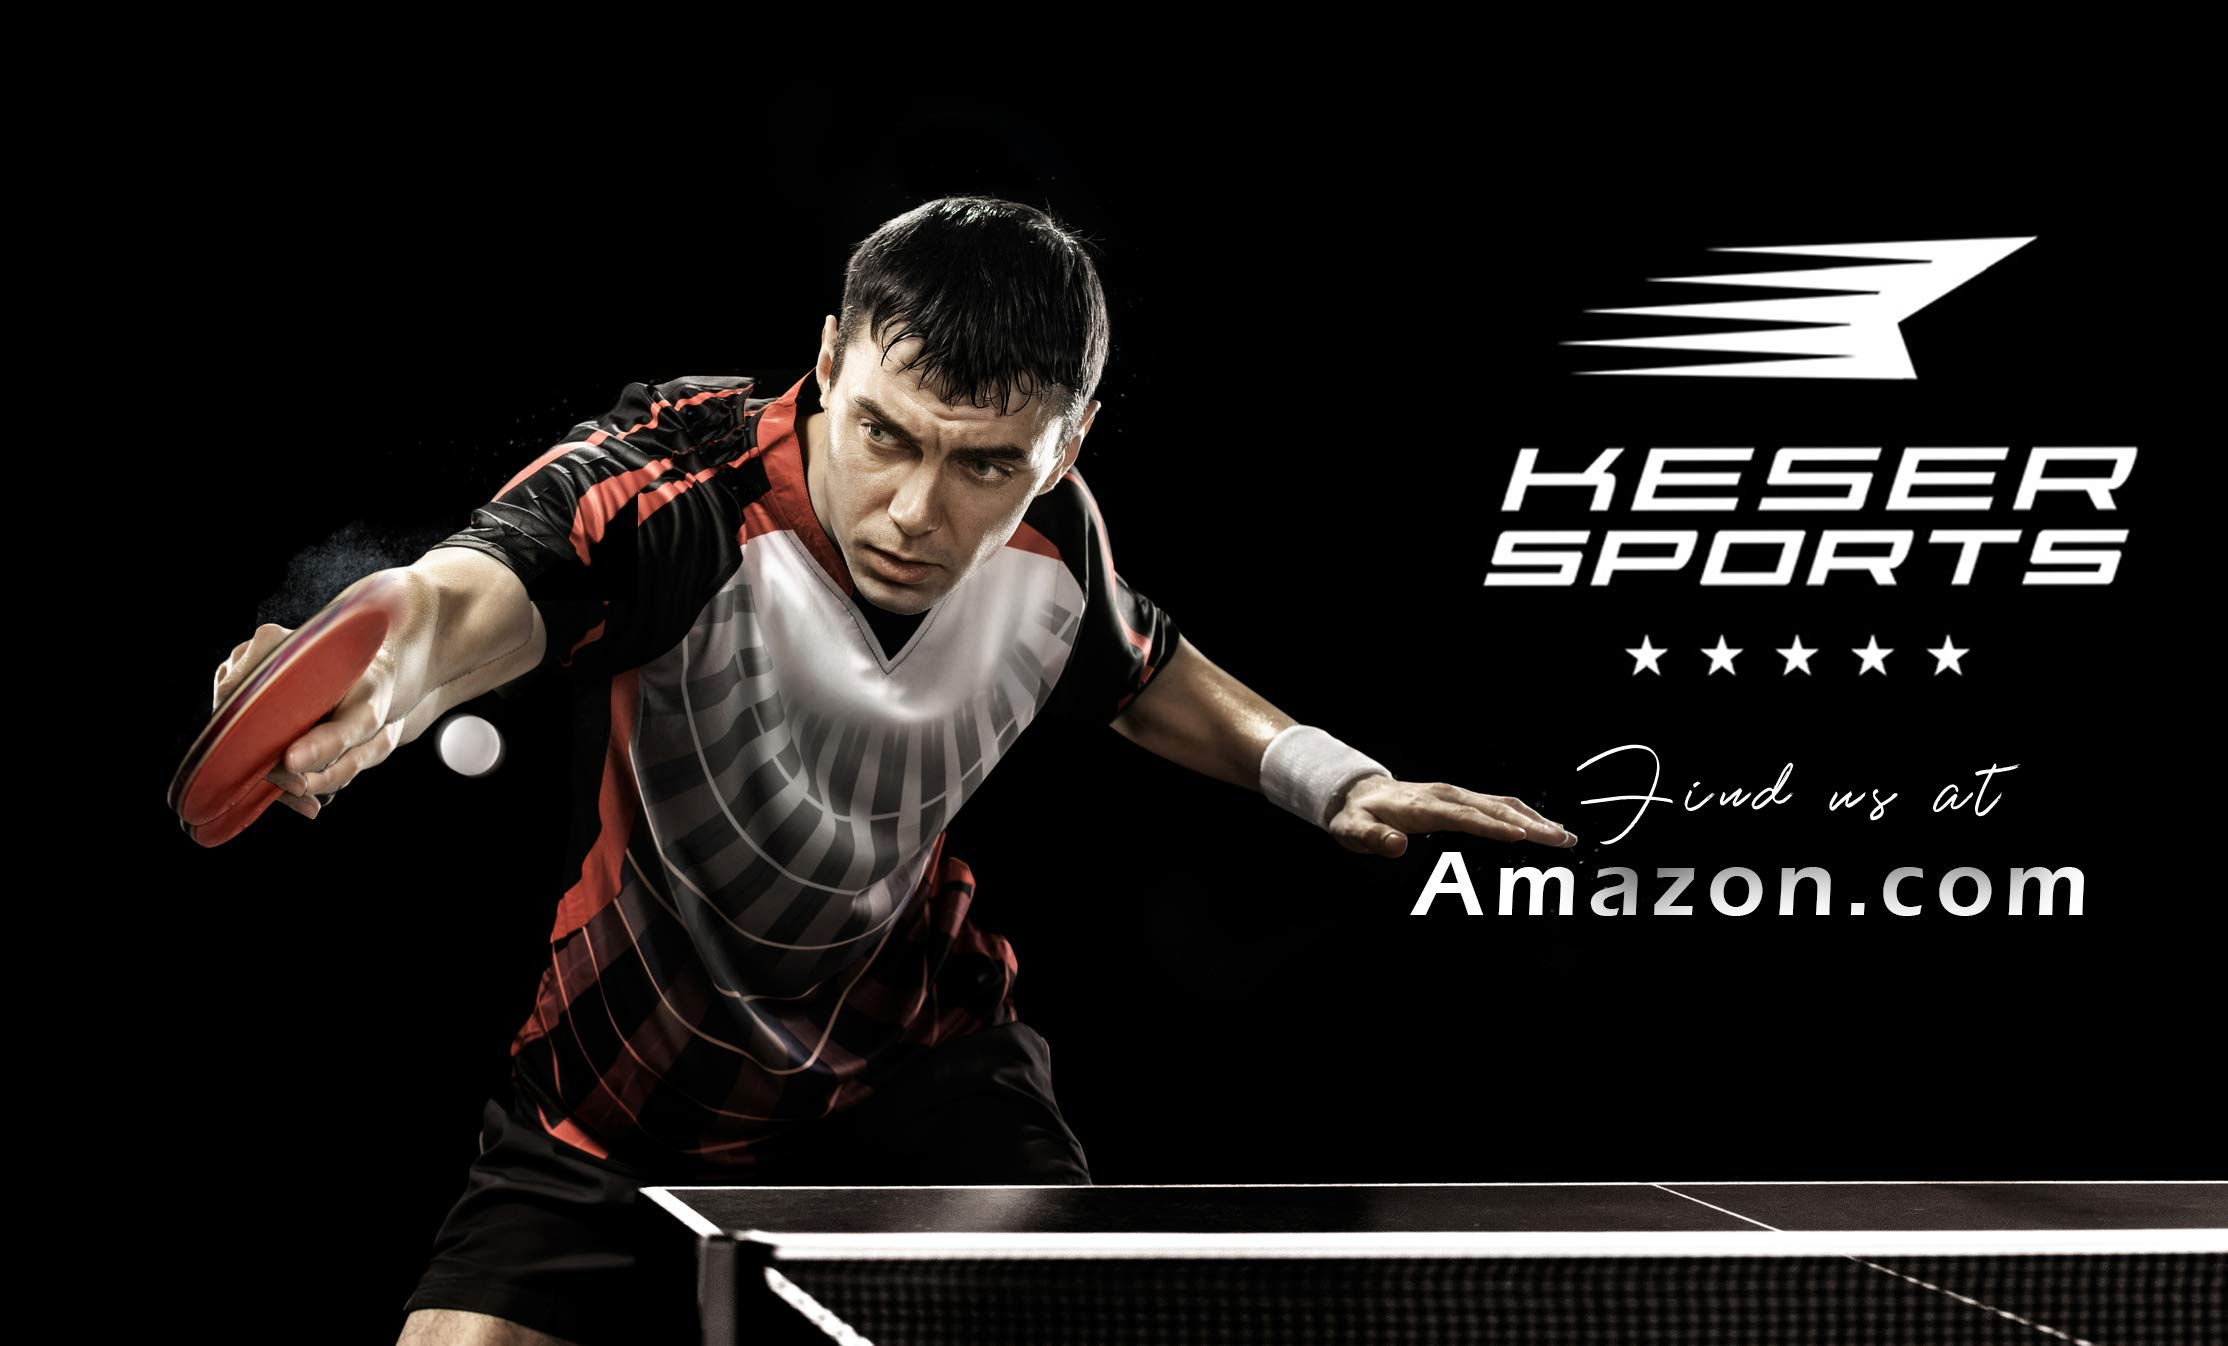 Keser Sports 5-Star Ping Pong Paddle Set, 4-Player Racket Set Bundle, 8 Professional ABS Balls, Portable Storage Bag, Full Table Tennis Set, Advanced Spin, Speed & Control, Play Outdoors/Indoors by Keser Sports (Image #2)